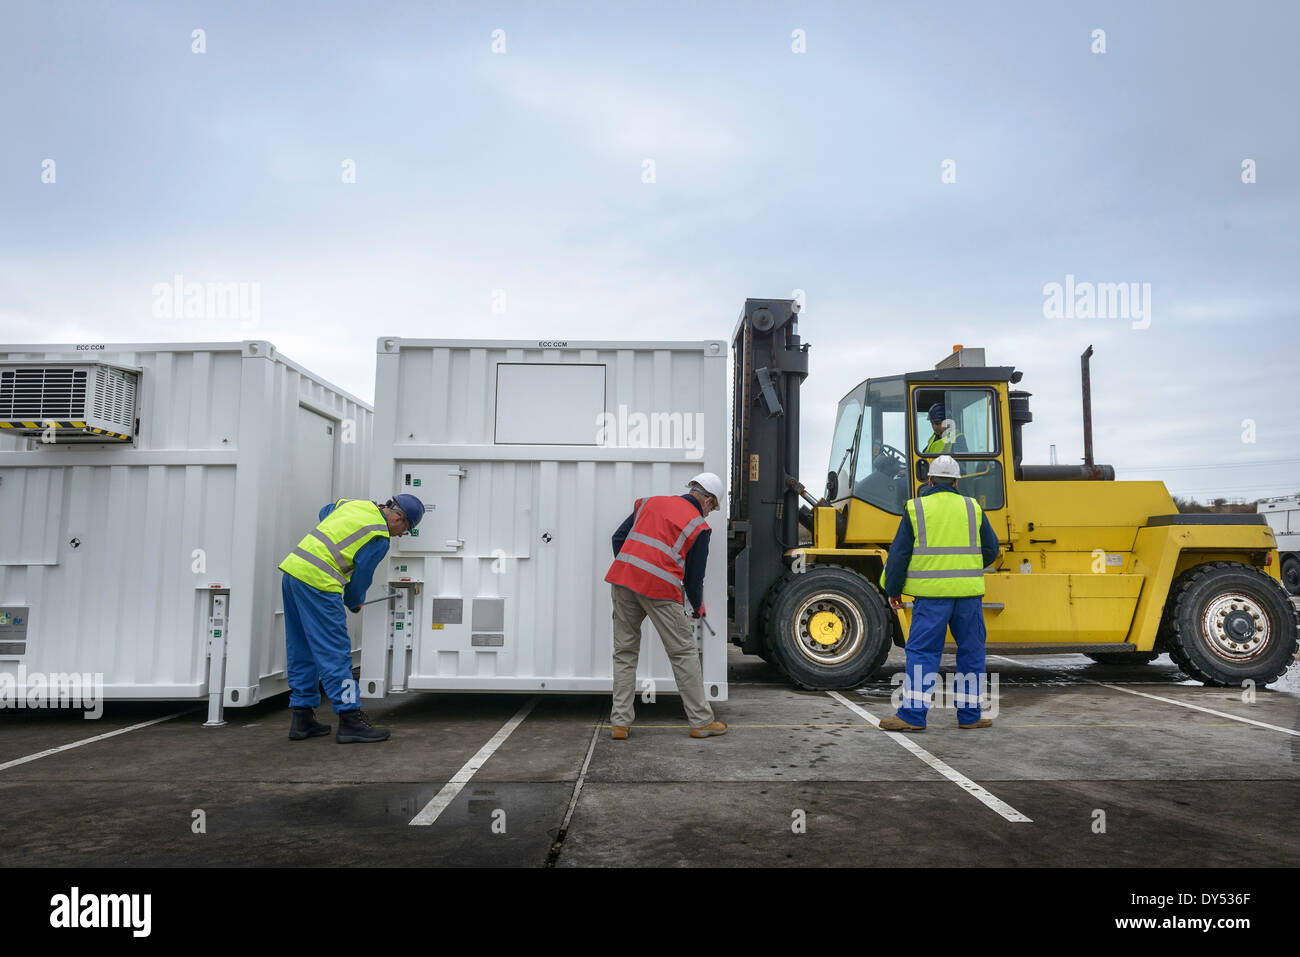 Emergency Response Team workers installing emergency control rooms with fork lift truck - Stock Image